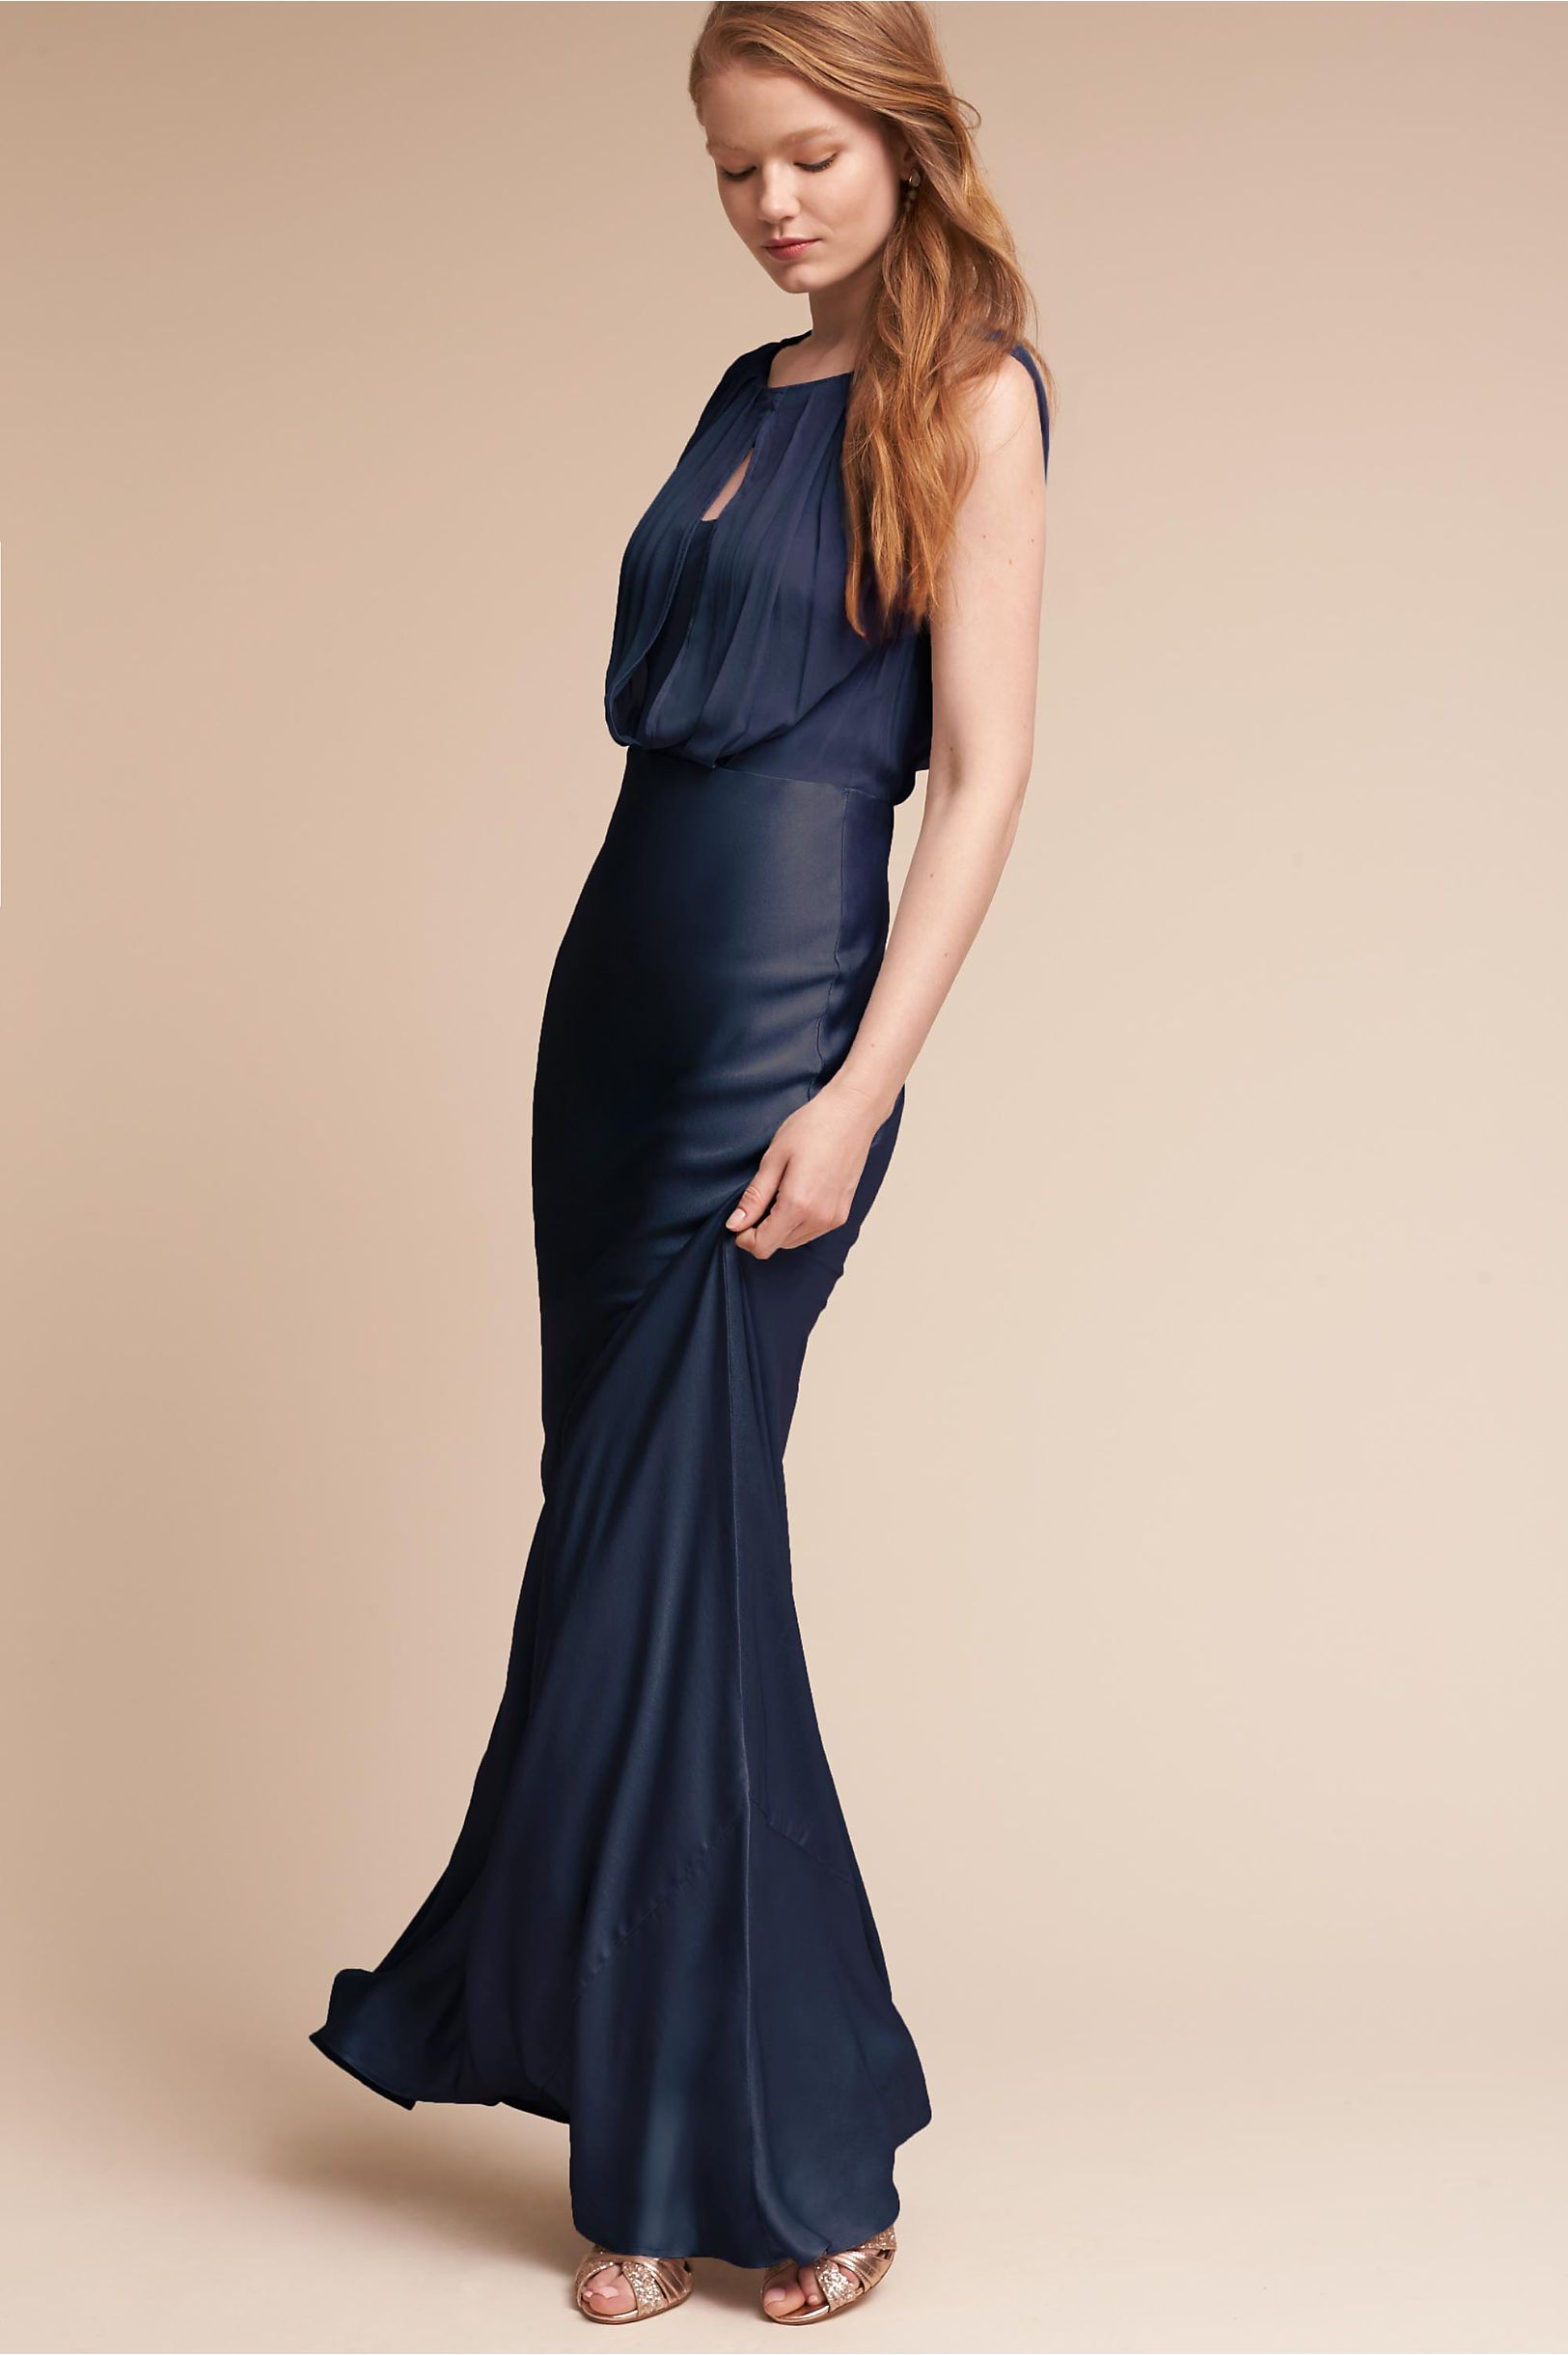 BHLDN Breathless Dress in Occasion Dresses View All Dresses | BHLDN ...